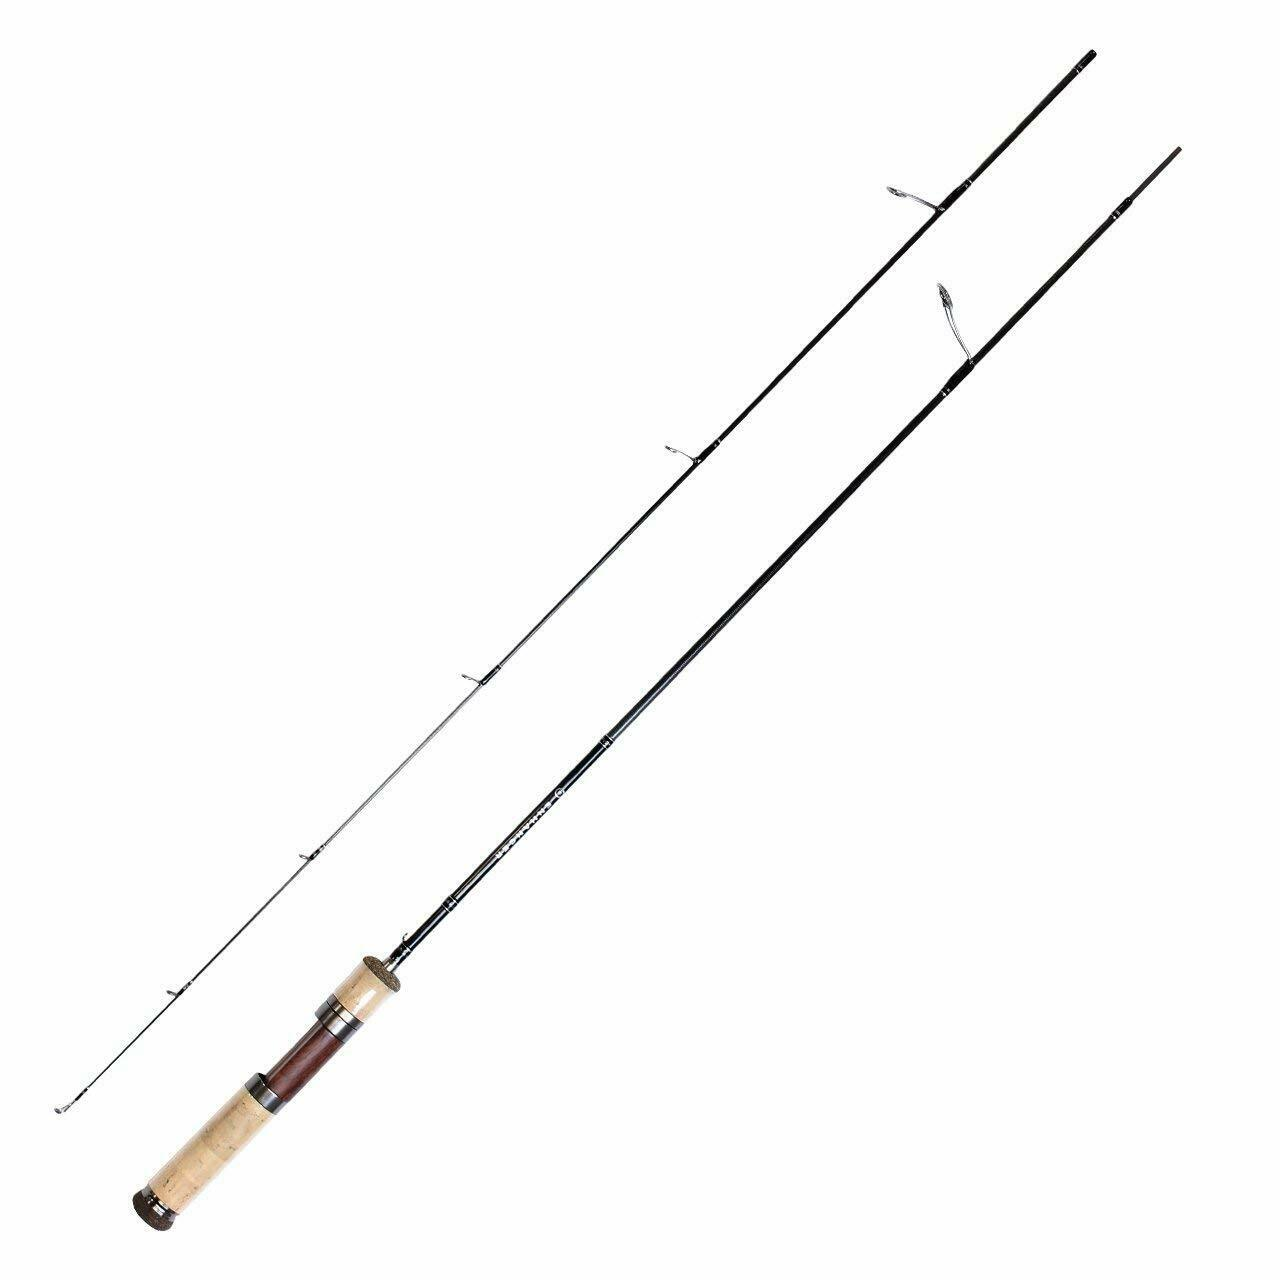 Tiemco Spinning Rod Enhancer MOUNTAIN Stream EH53L From Stylish Anglers Japan